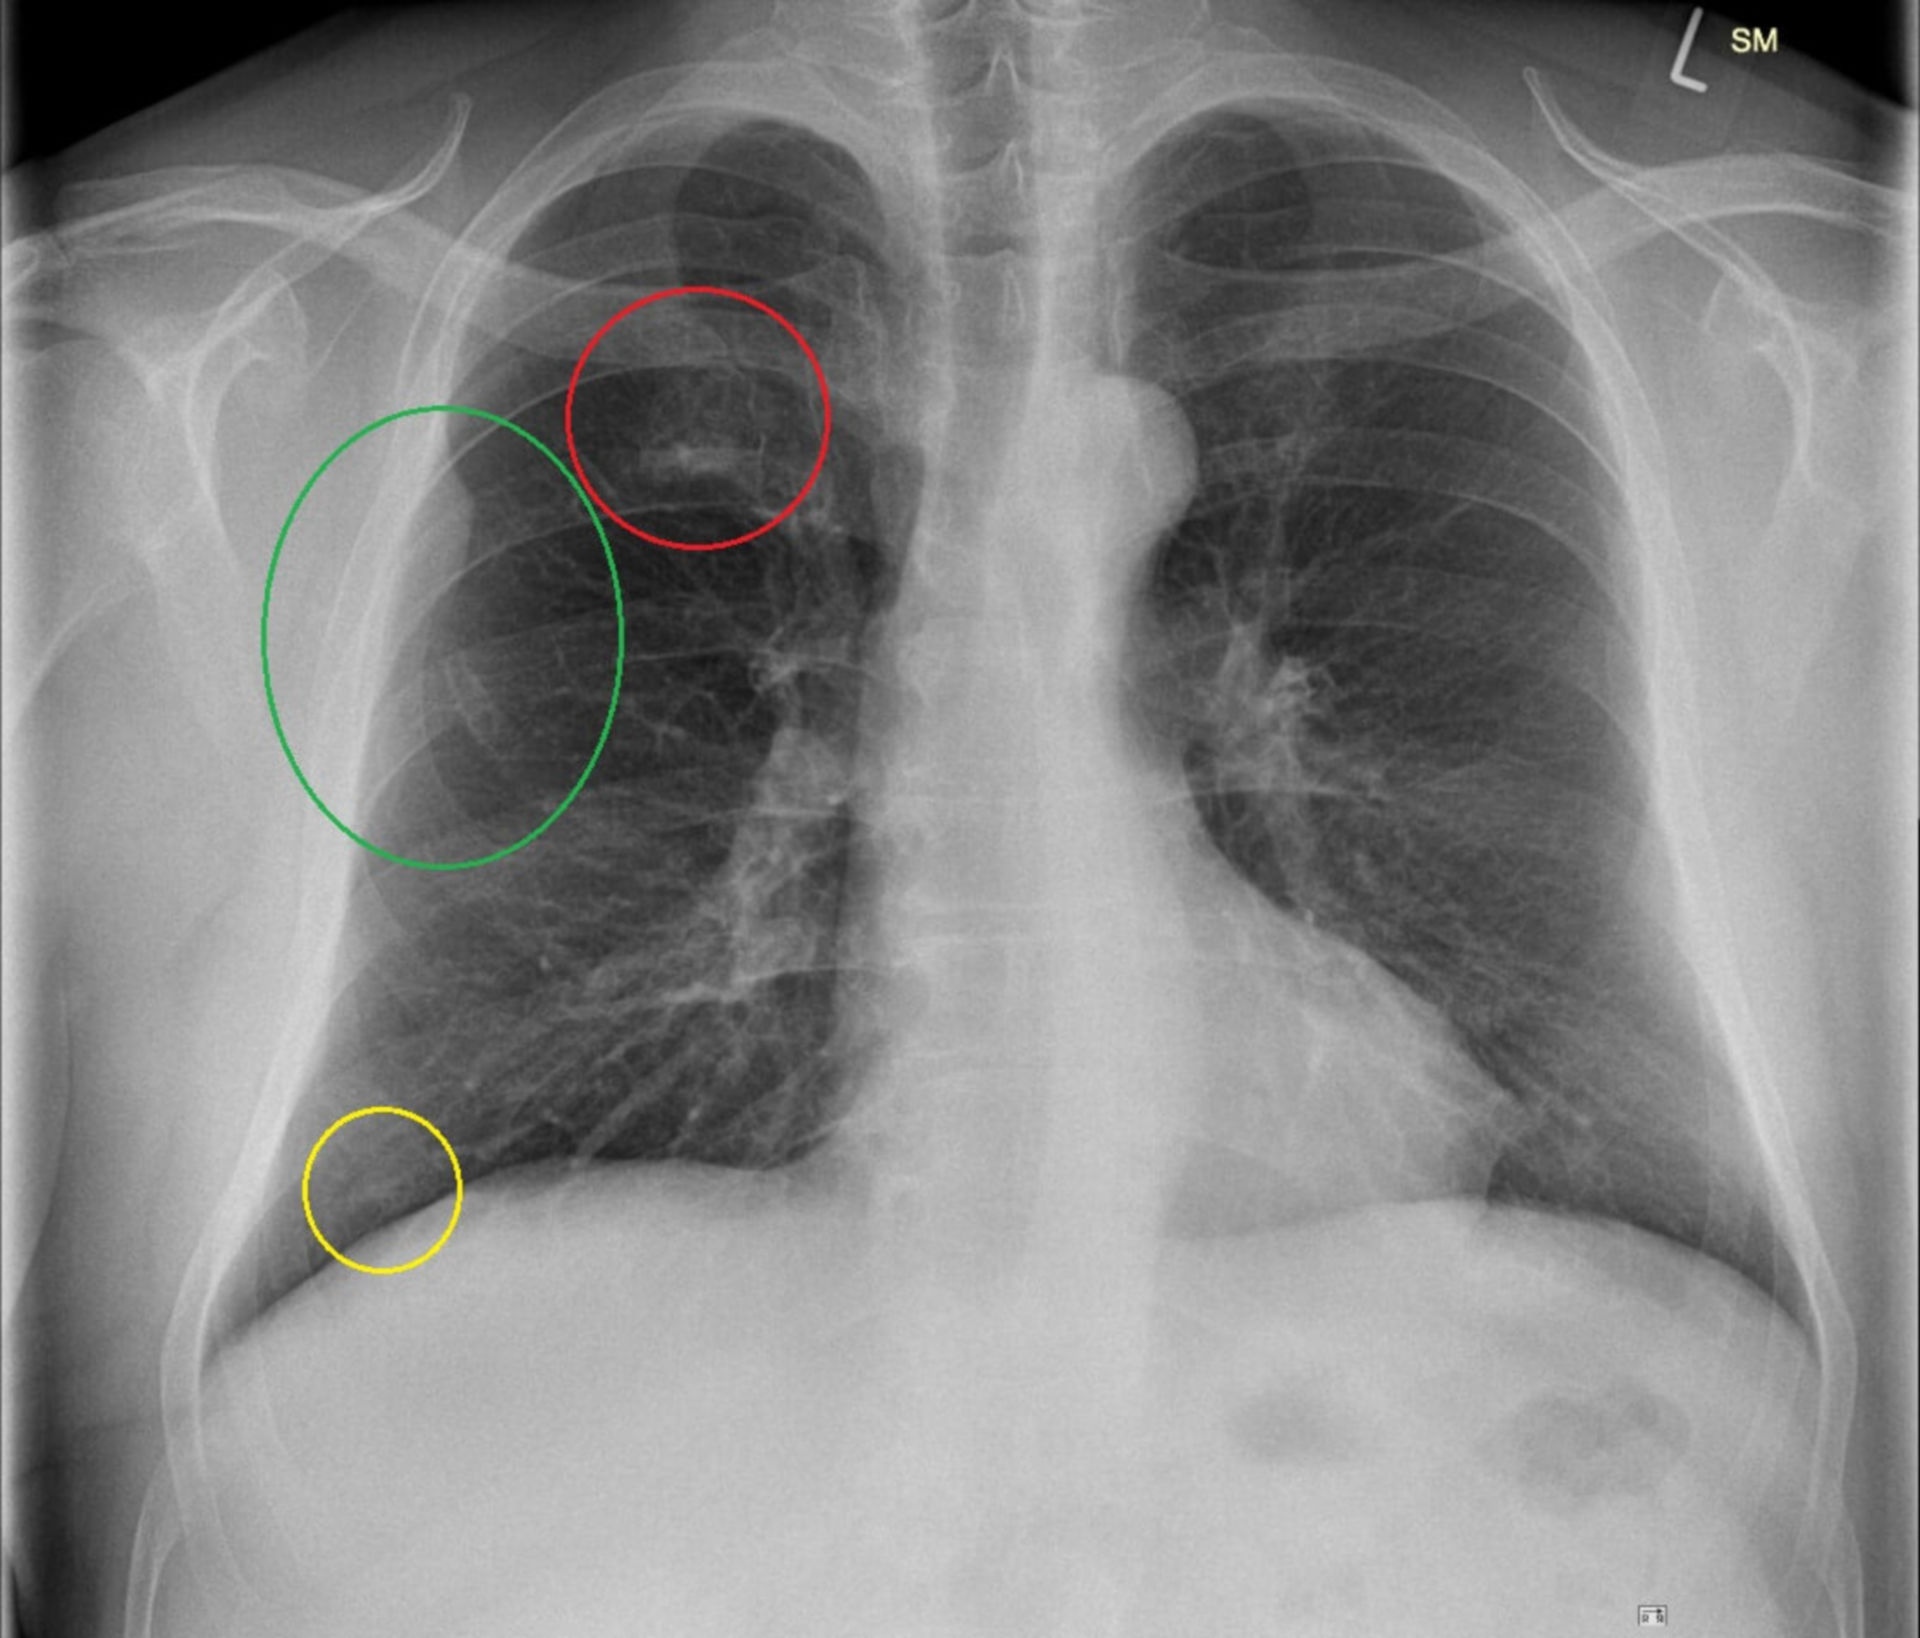 X-ray findings overview